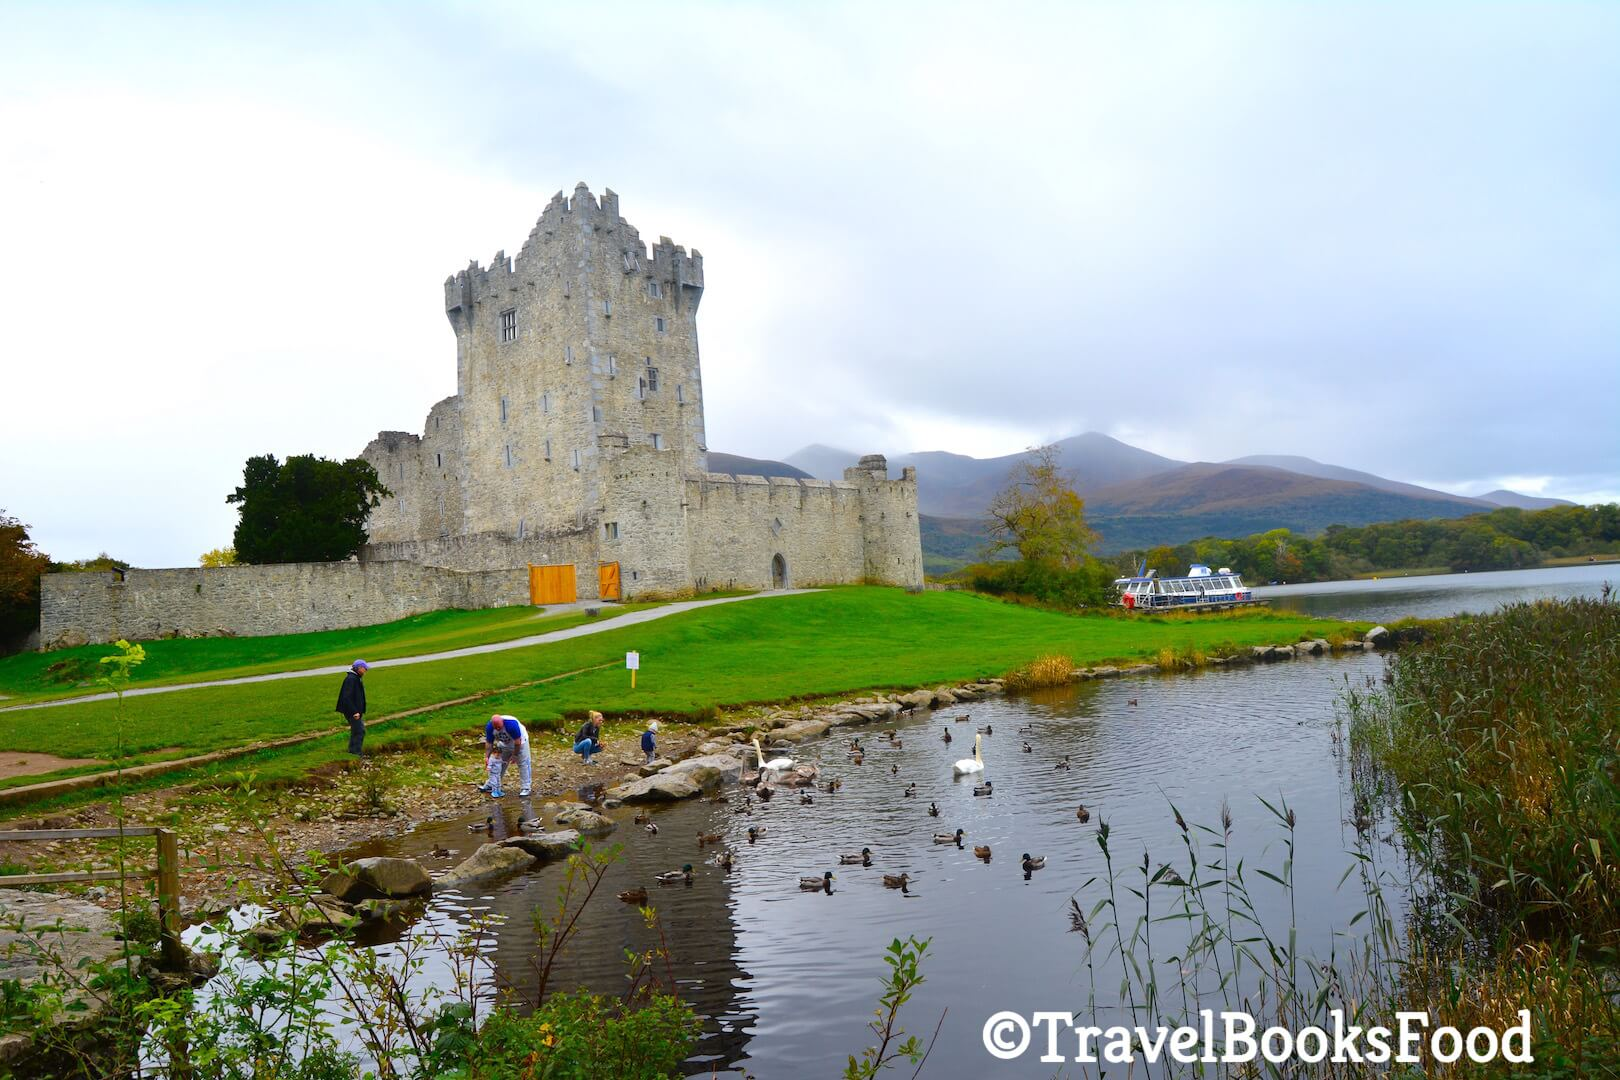 A Picture of Ross Castle in Killarney with few people feeding the swans in front of the castle